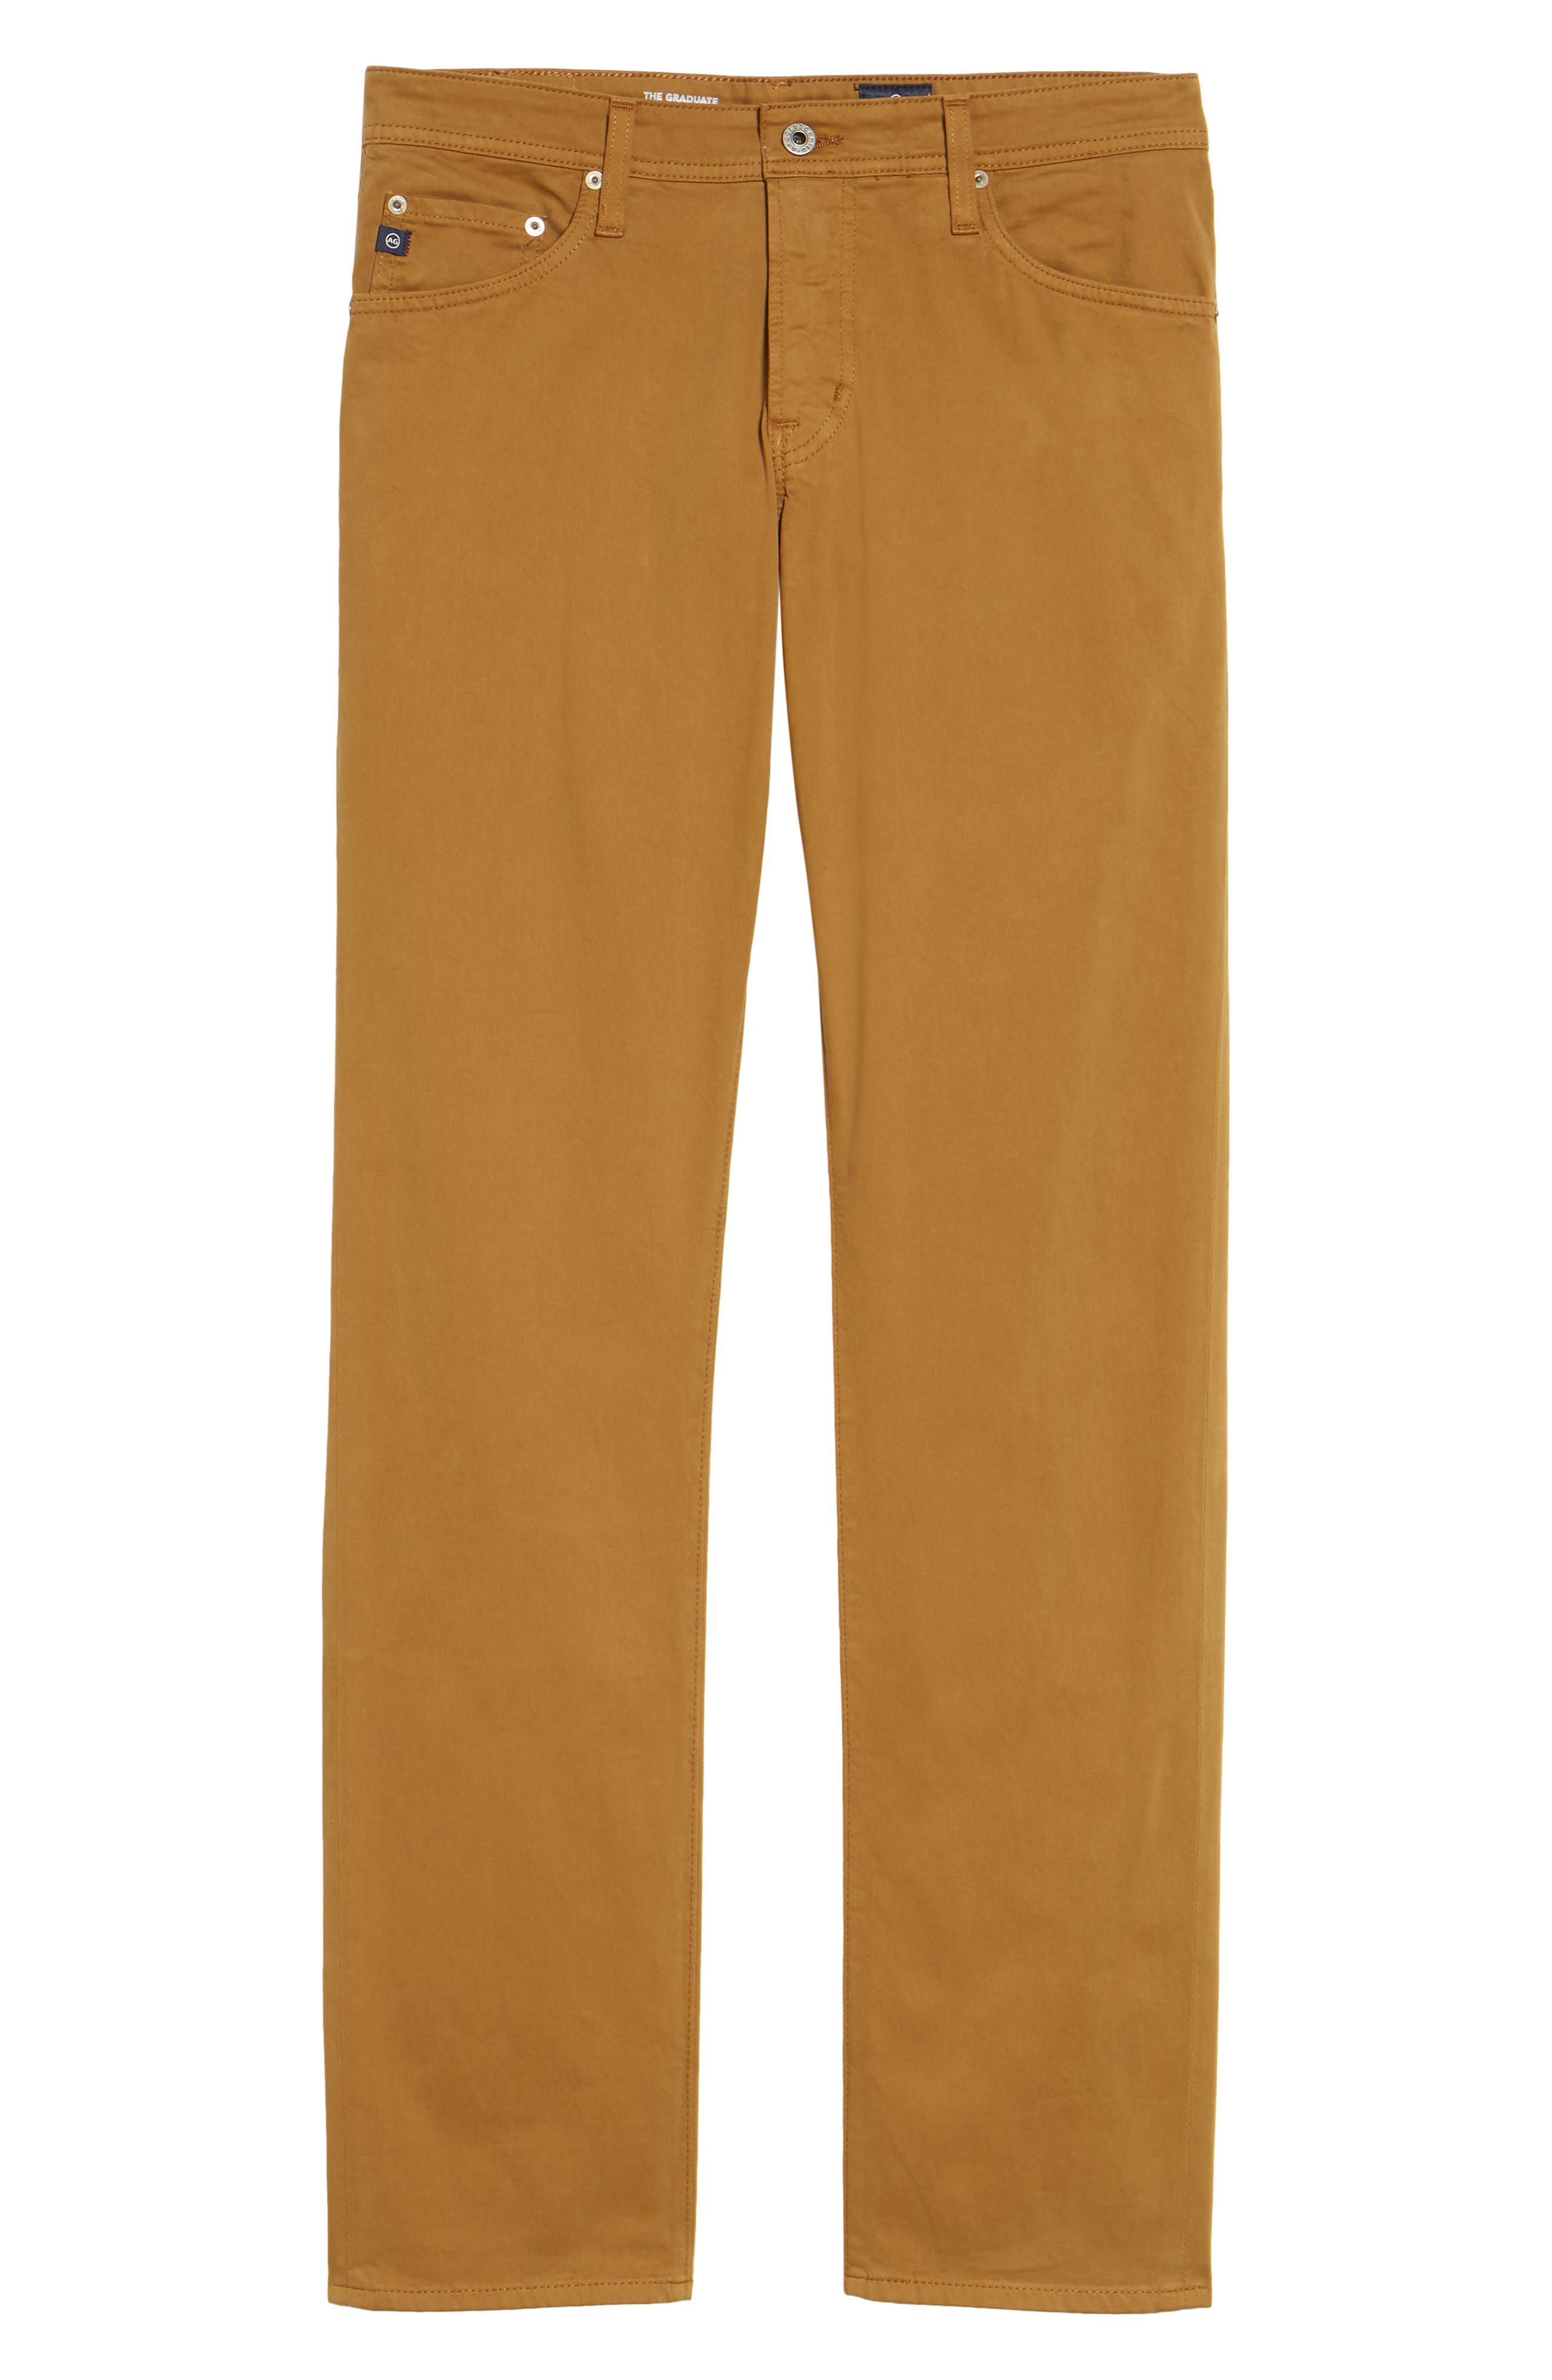 Graduate SUD Slim Straight Leg Pants,                             Alternate thumbnail 6, color,                             Burnt Saffron (Bfn)